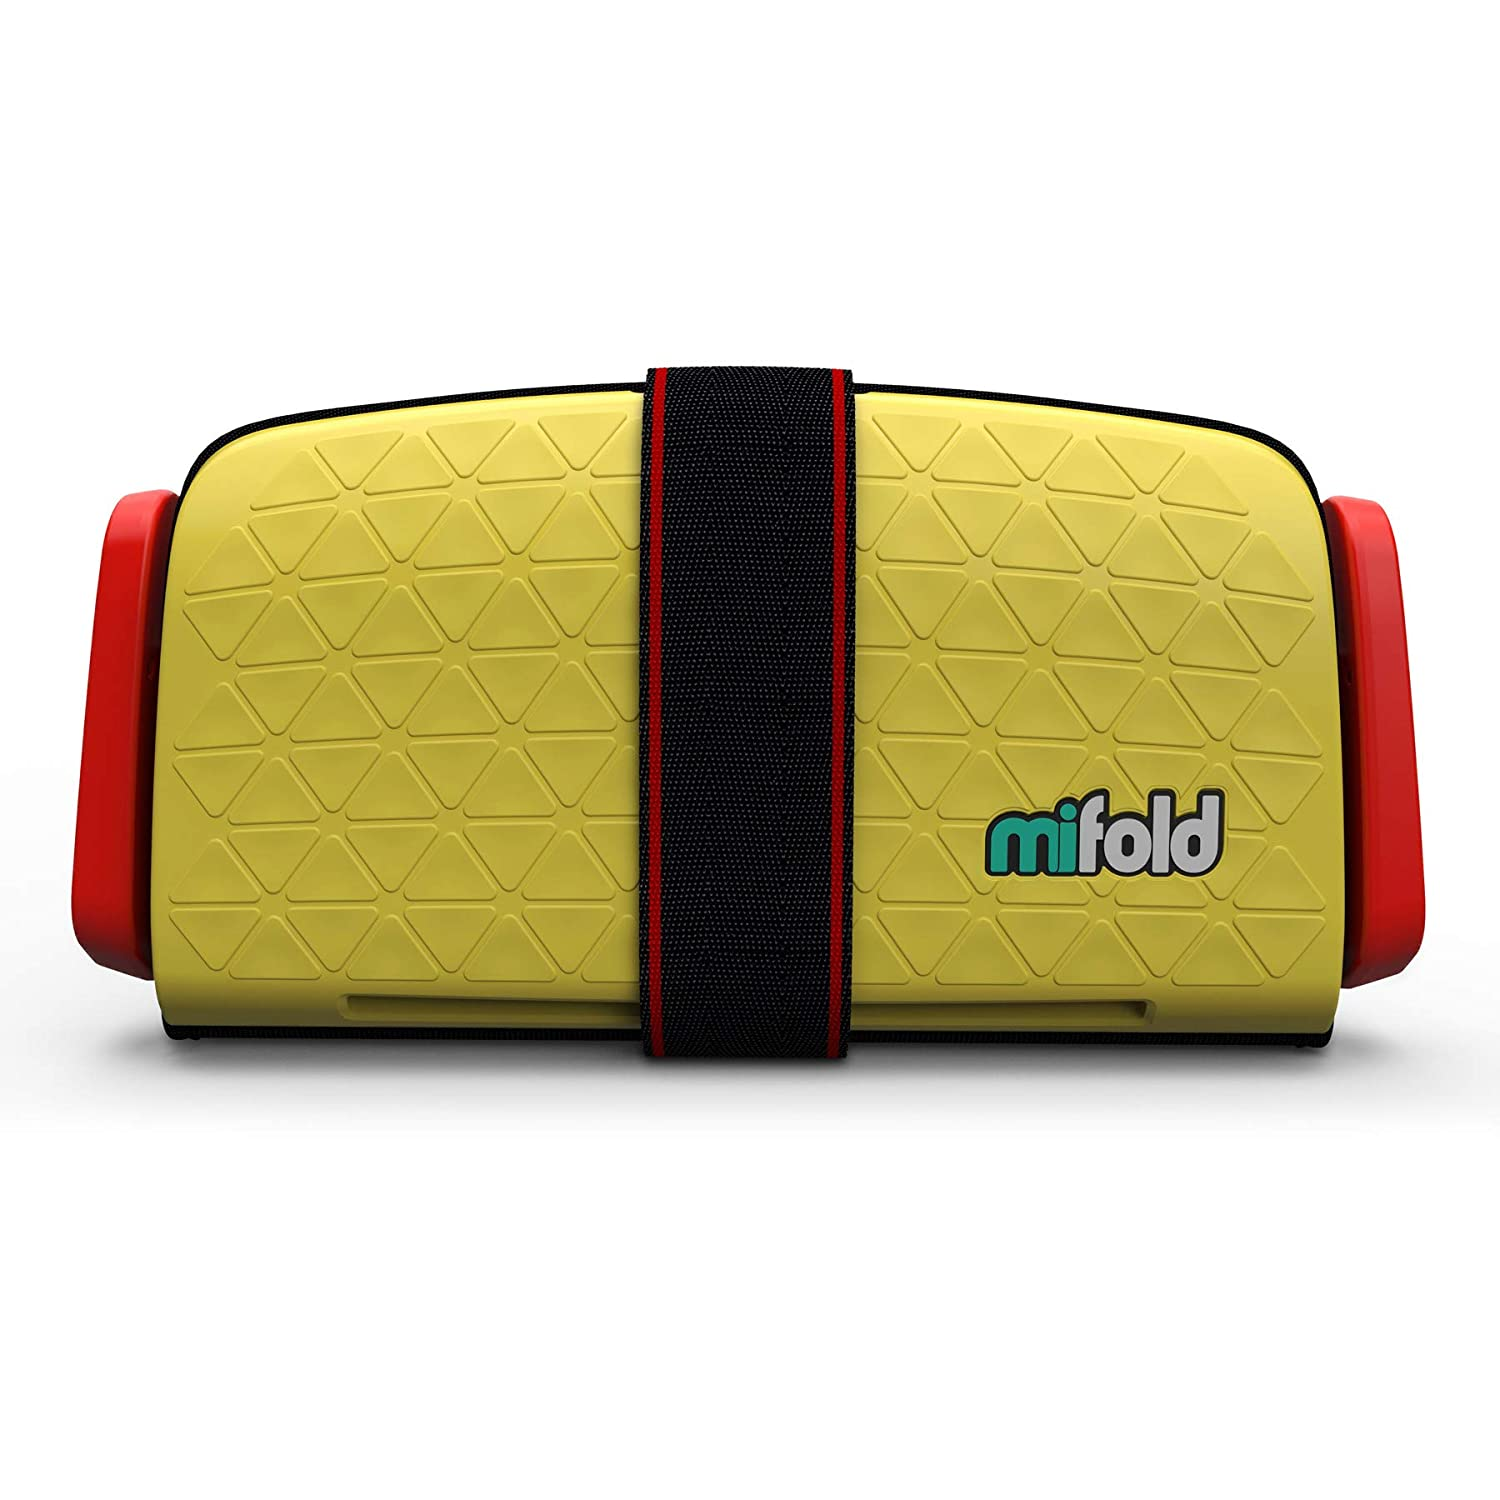 mifold Mifold Booster, Taxi Yellow MF01CYEL